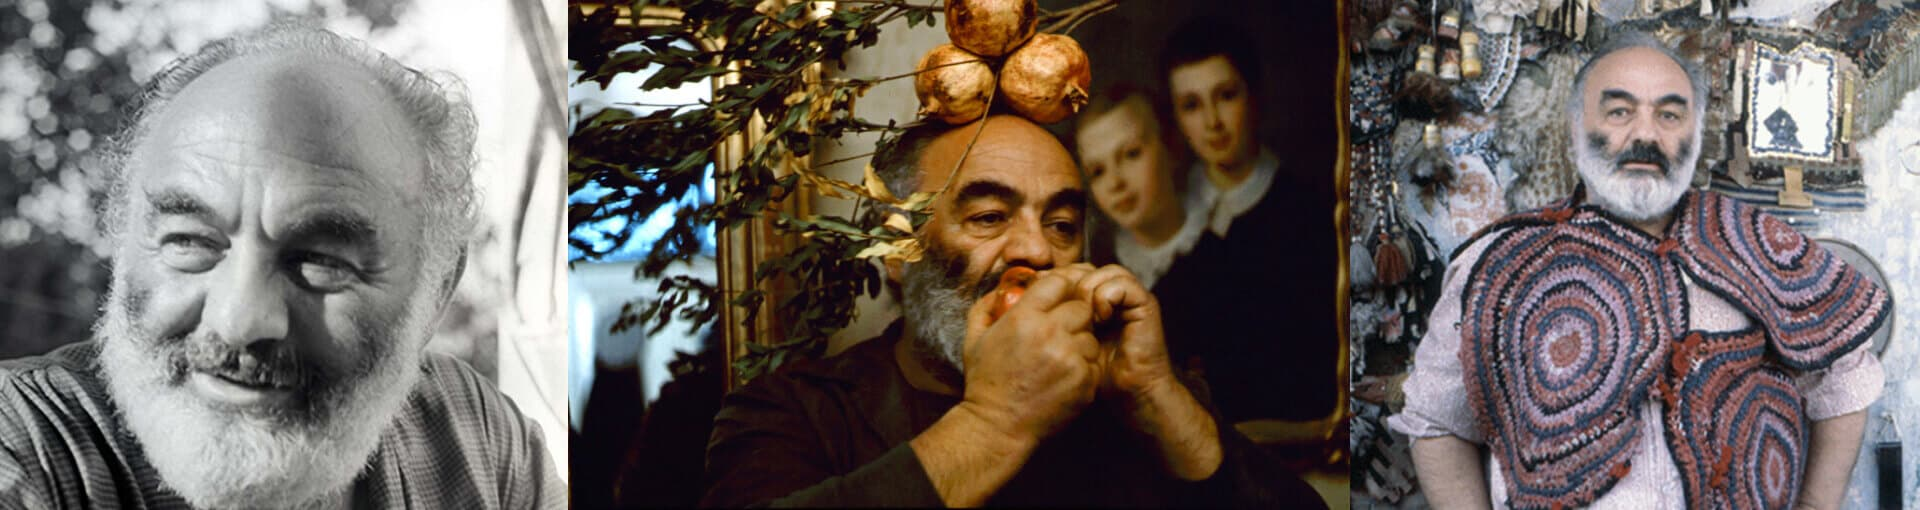 Sergei Parajanov: The Challenger of His Time